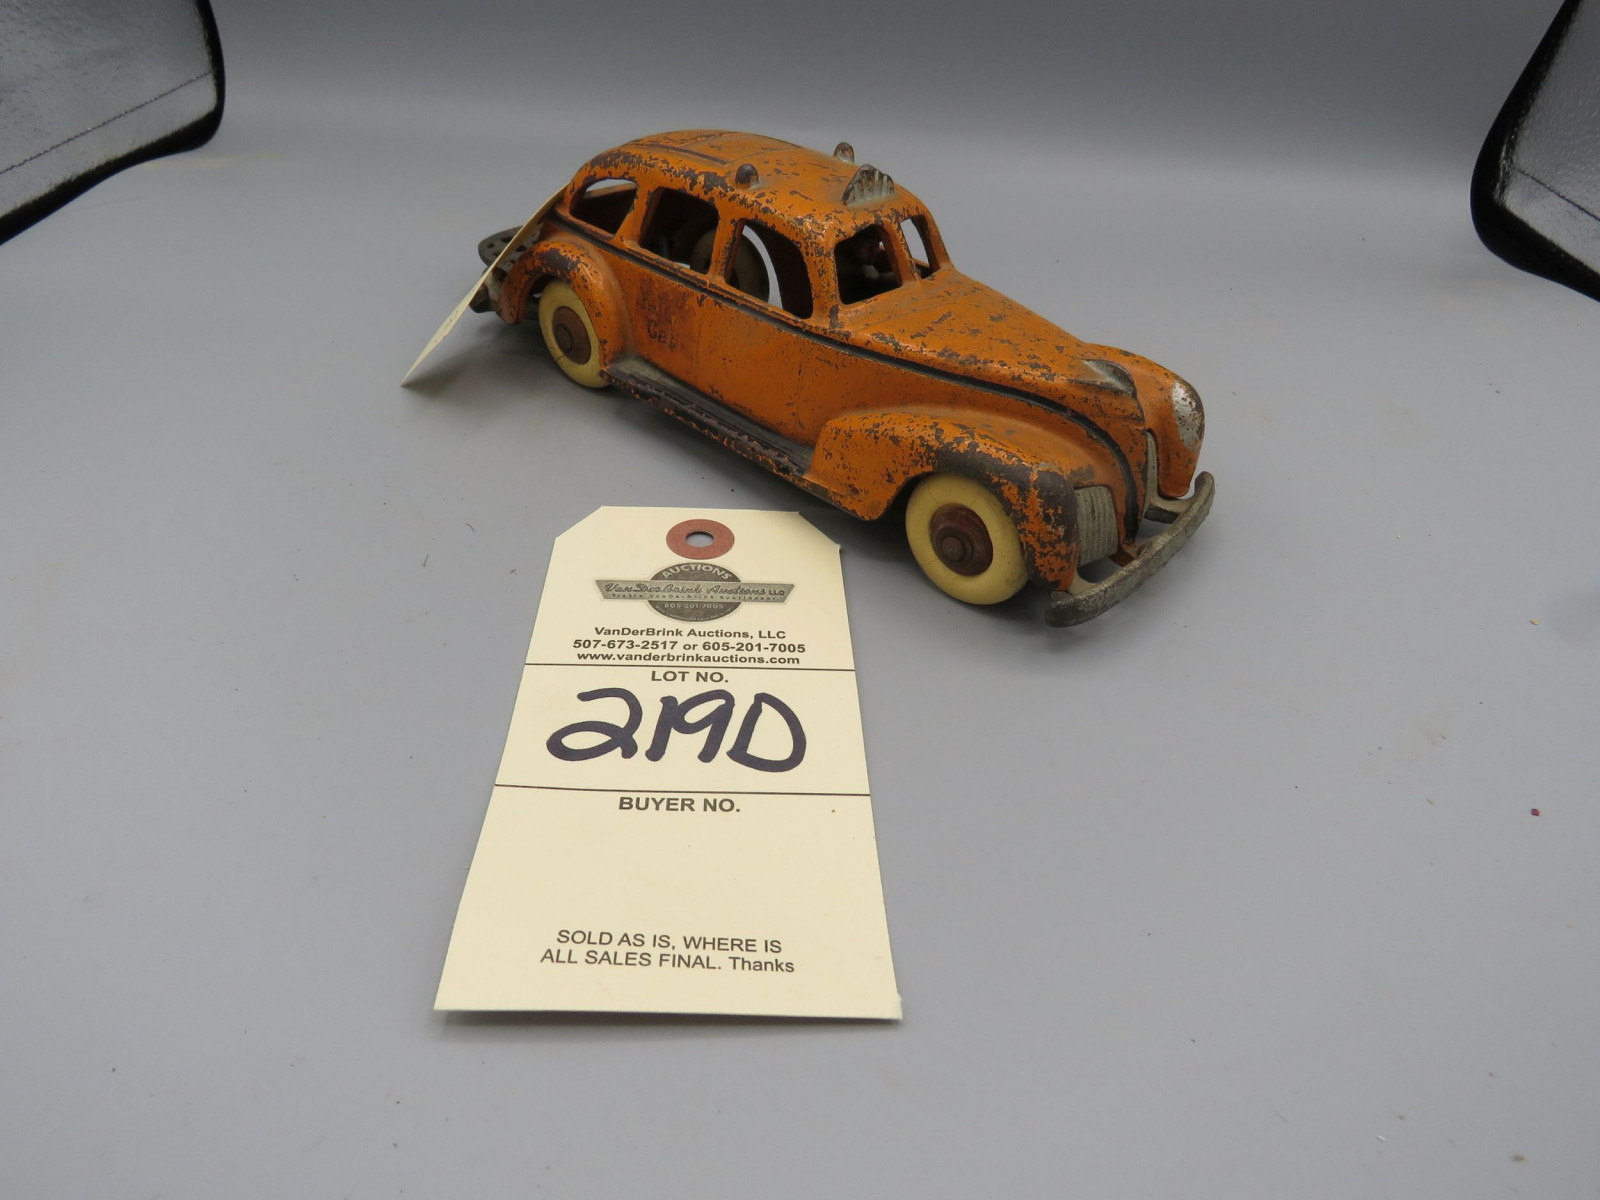 Hubley Cast Iron Taxi Cab @1939-40 Approx. 9 inches - Image 1